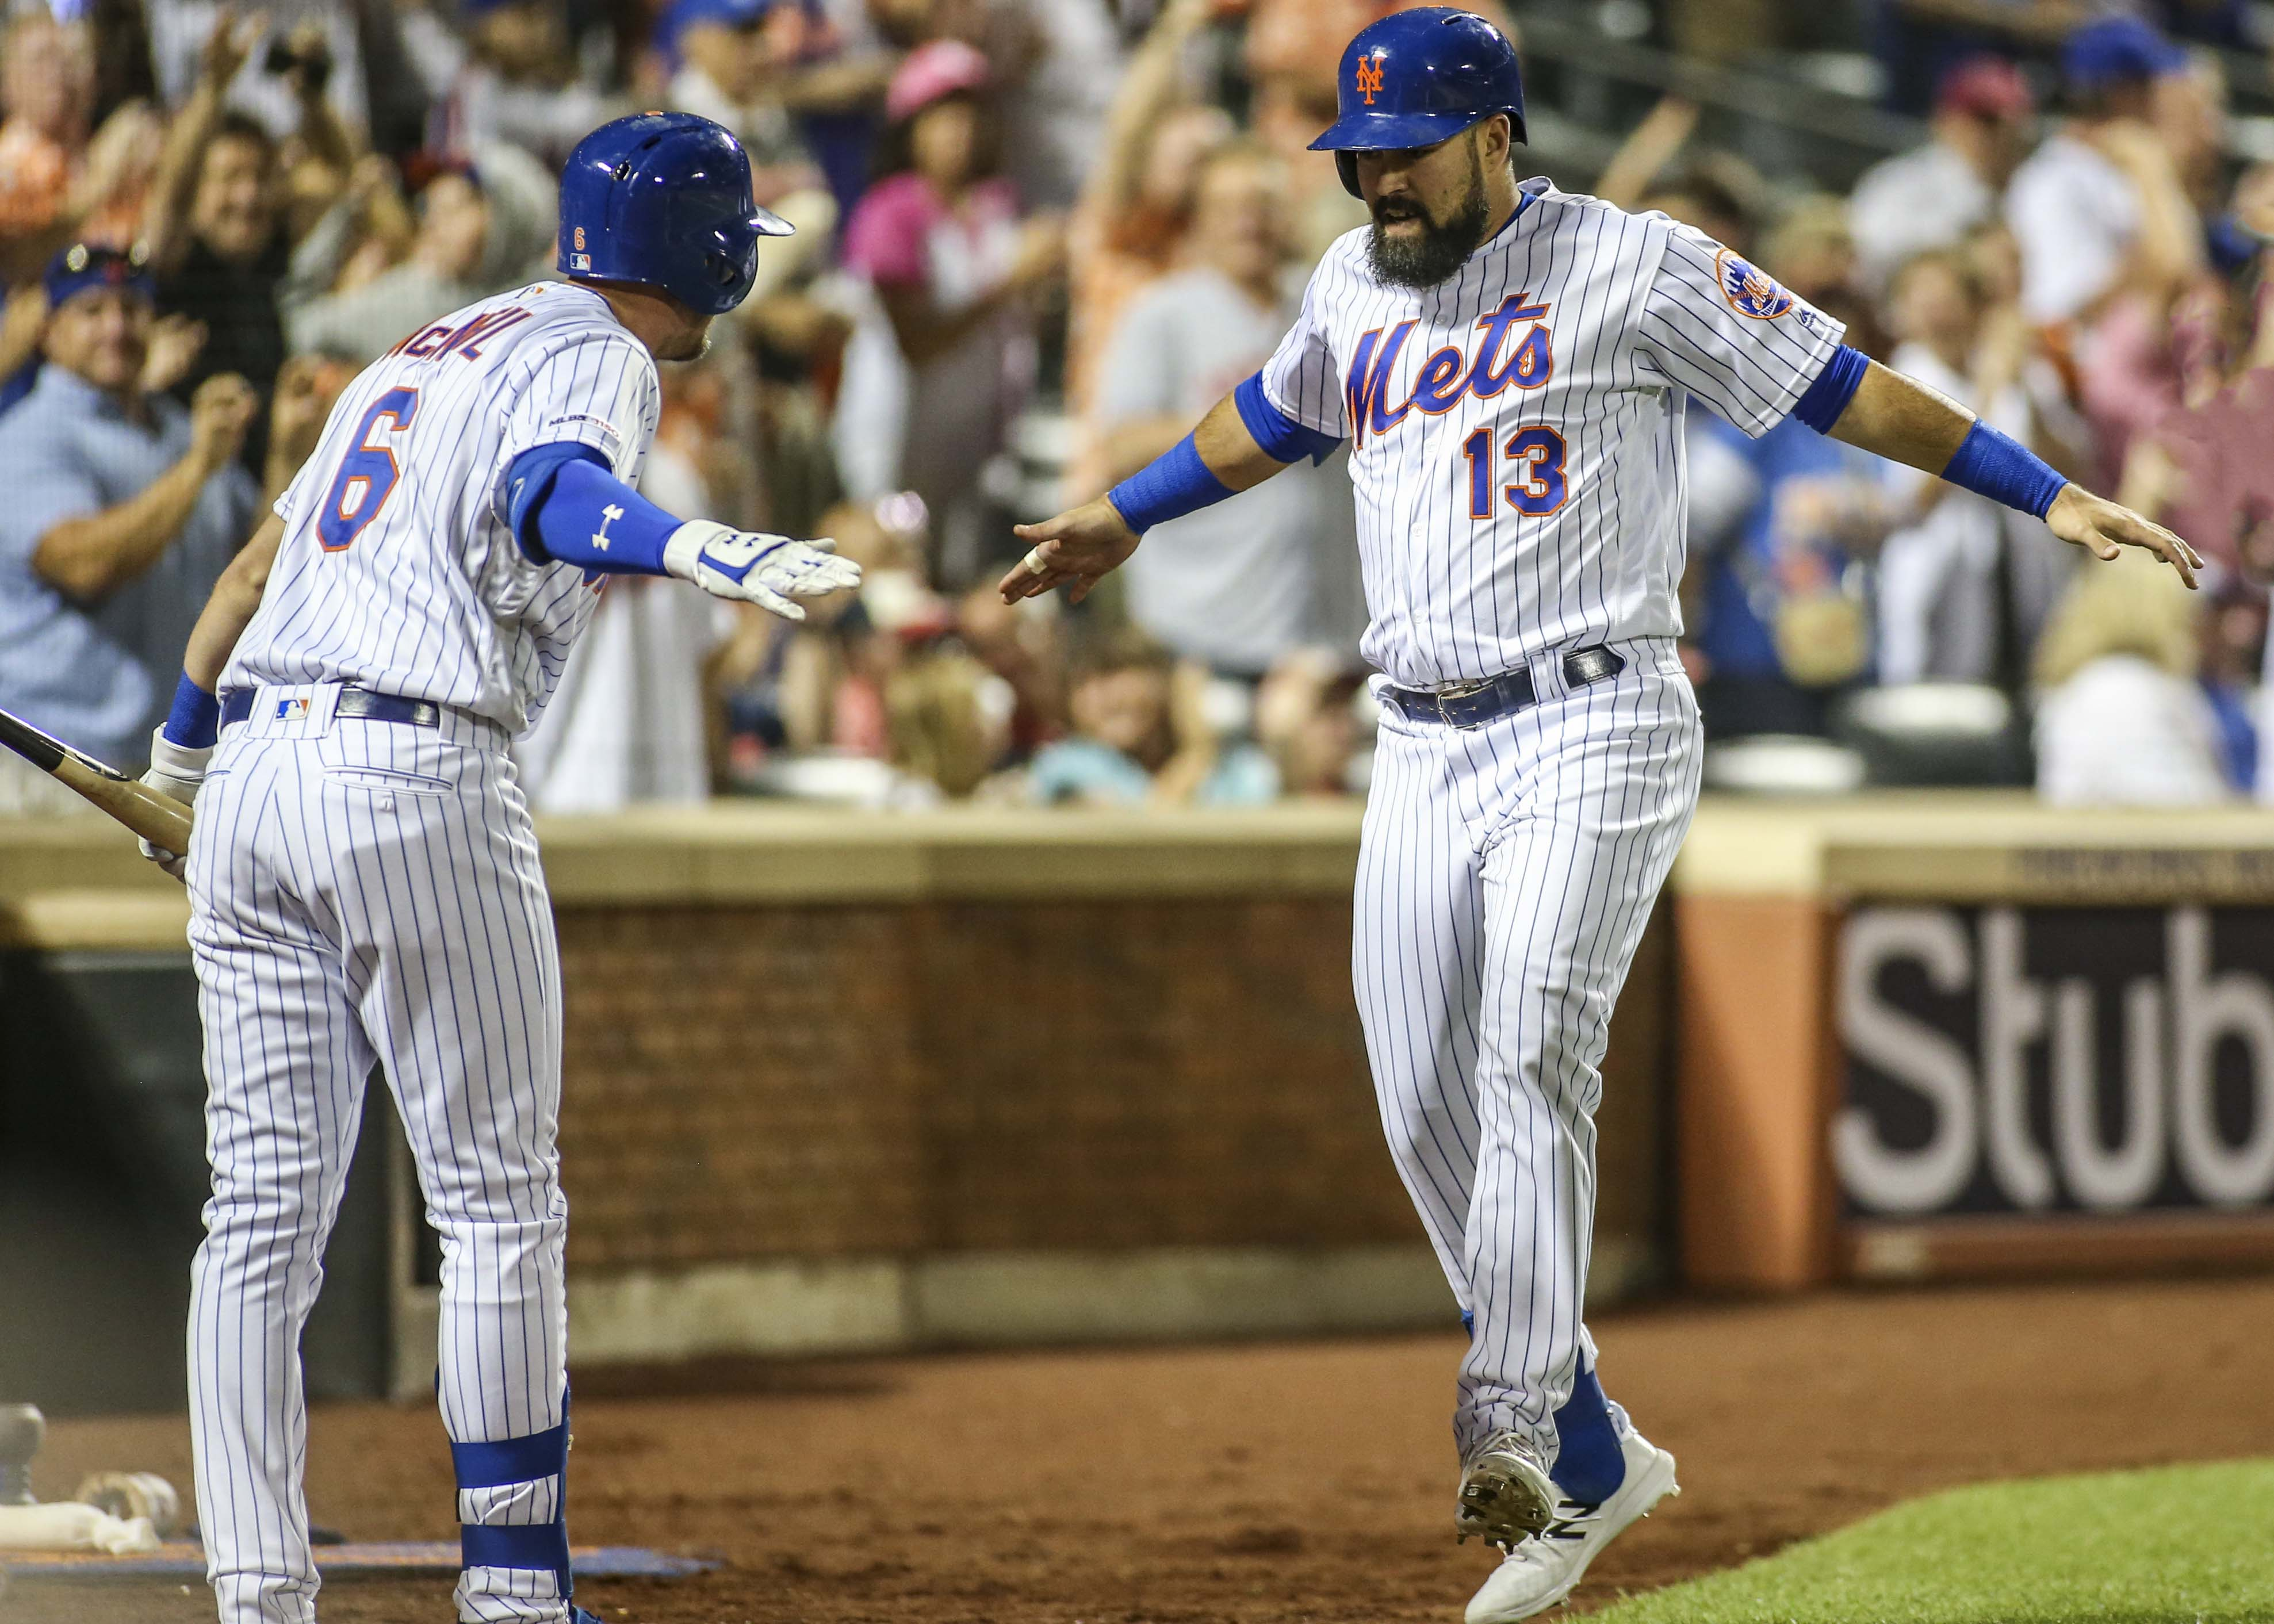 8/11/2019 Game Preview: Washington Nationals at New York Mets